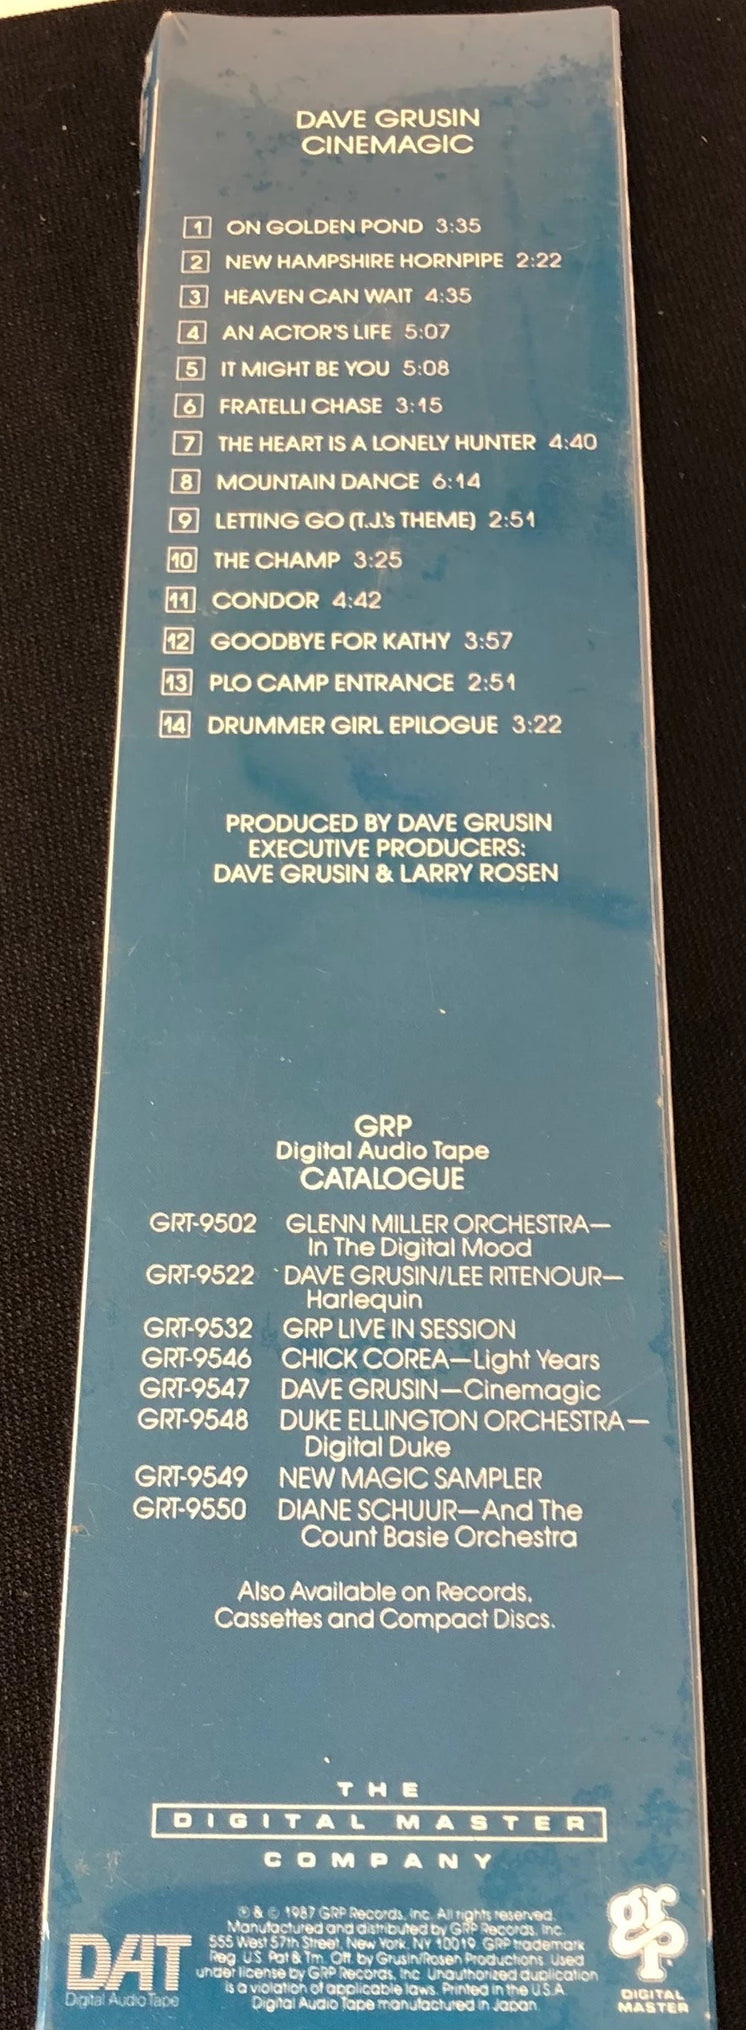 Dave Grusin - Cinemagic - New Pre-Recorded DAT Tape